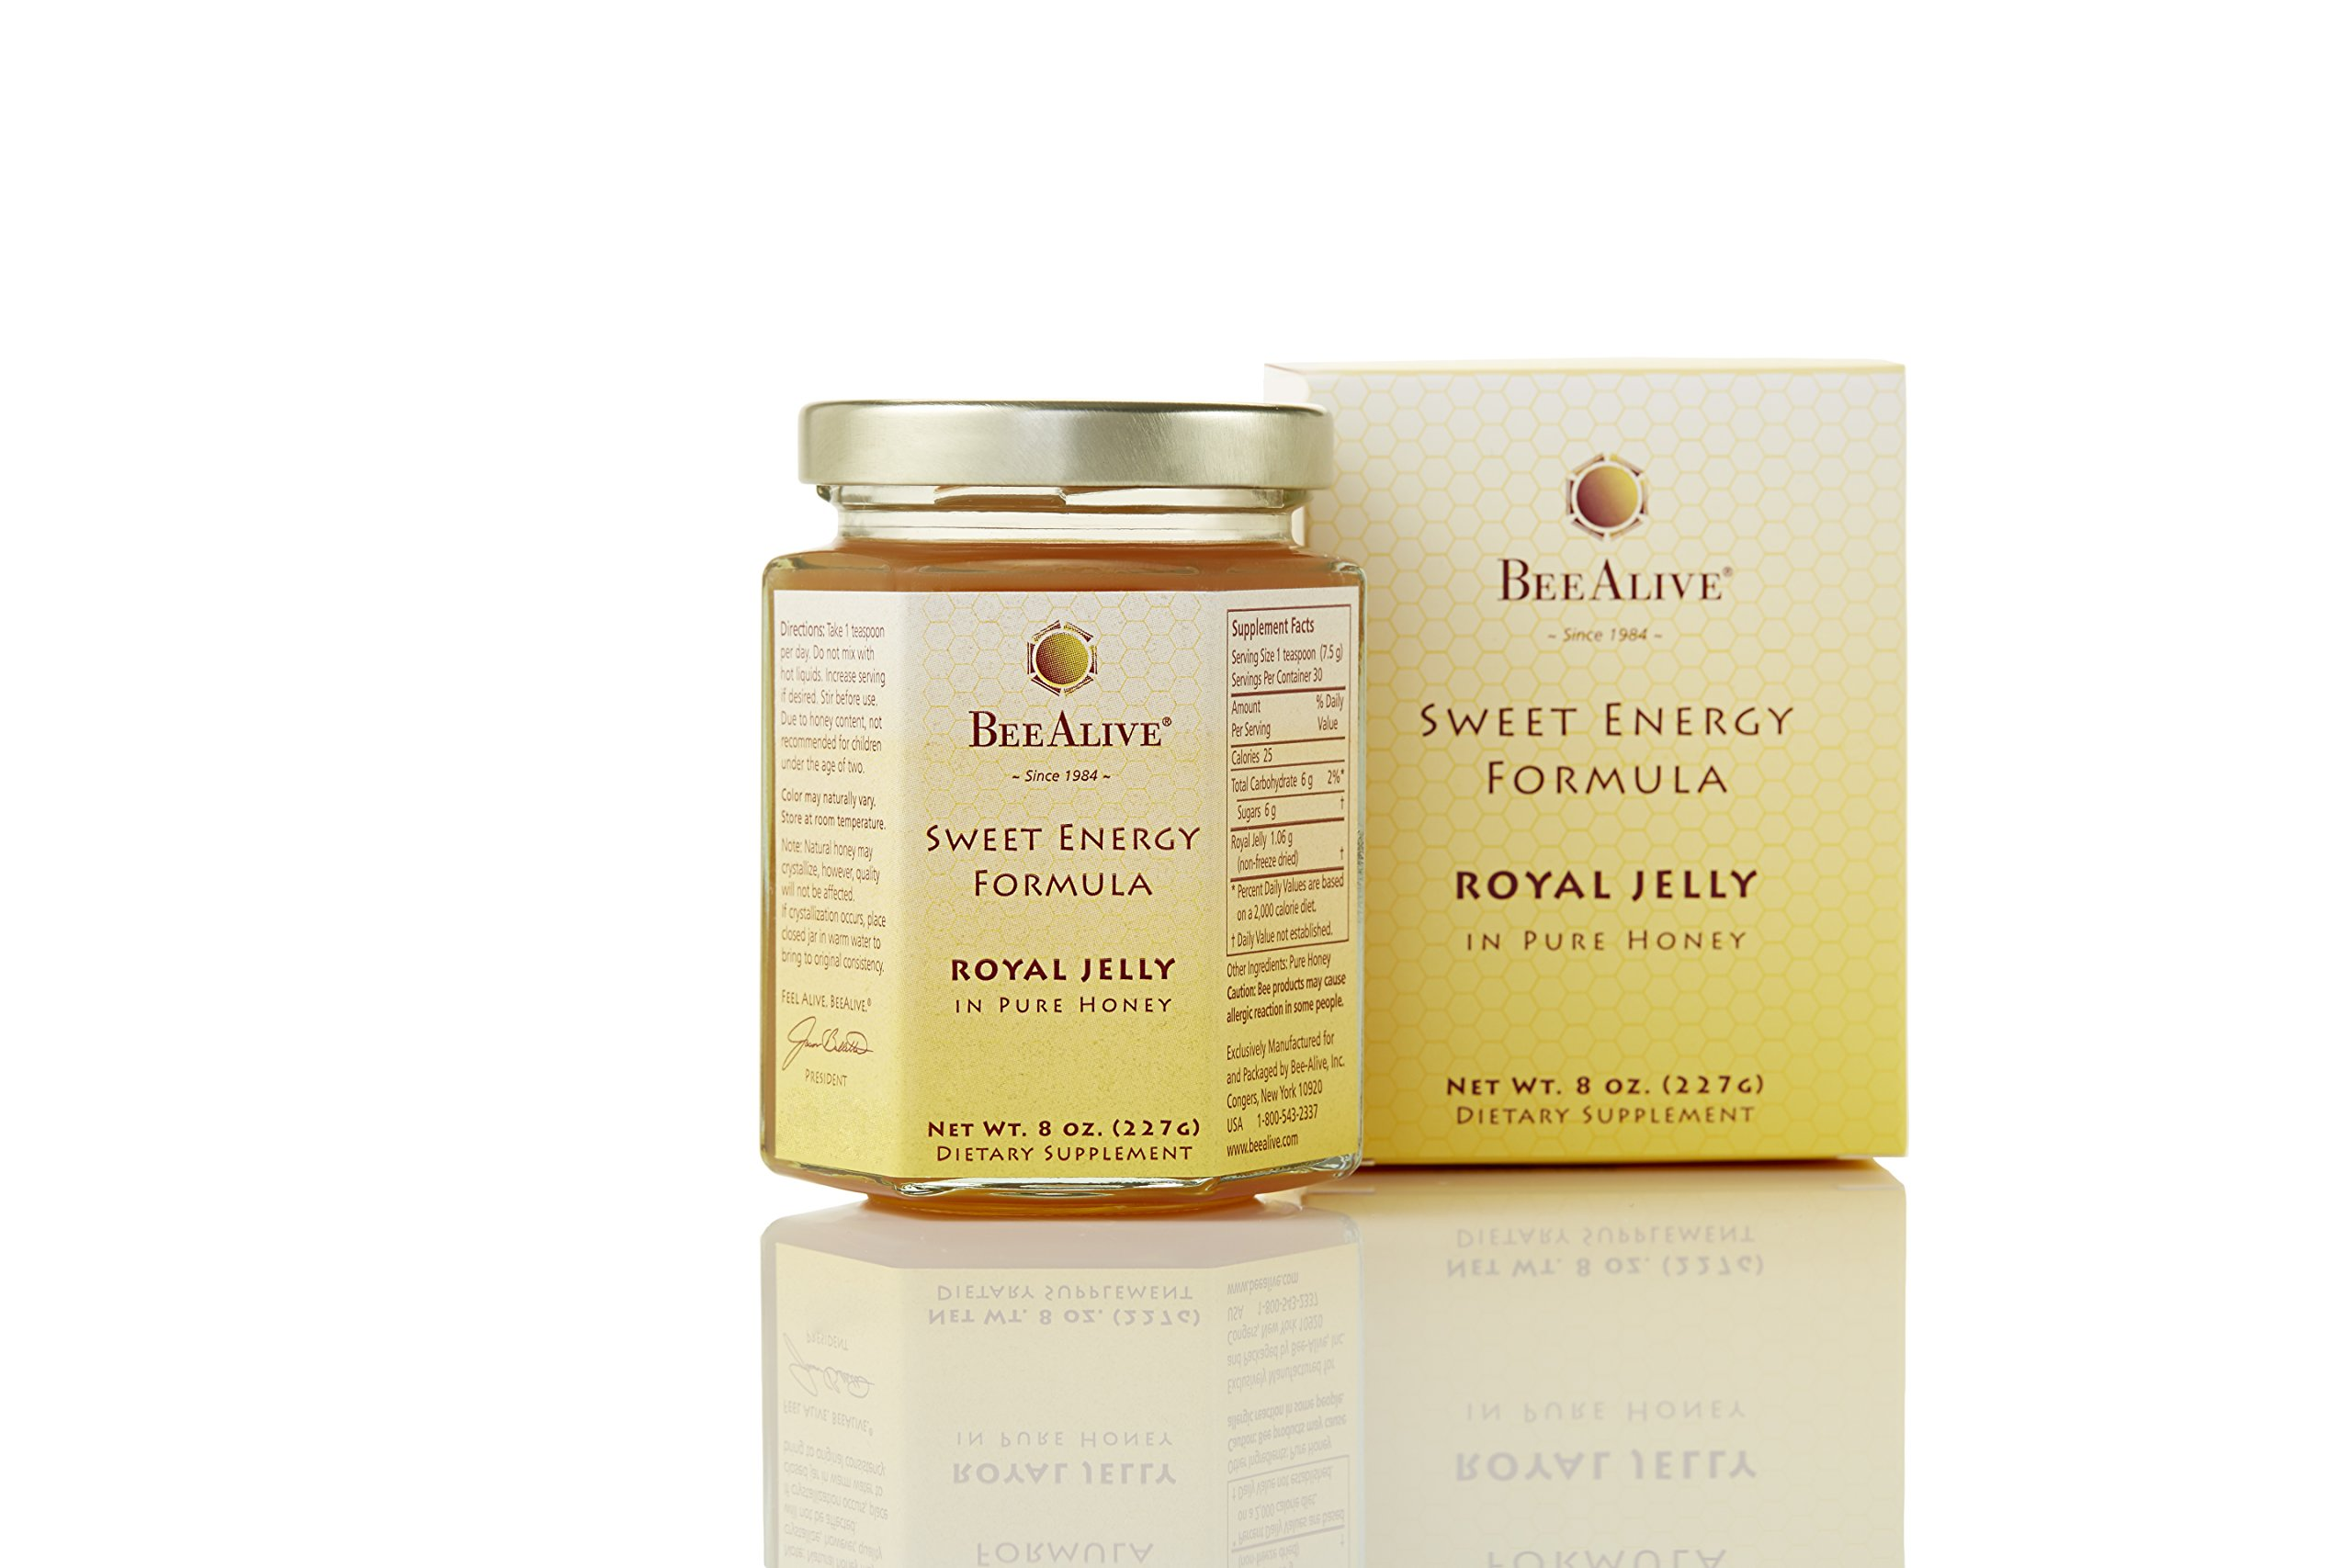 BeeAlive Sweet Energy Formula (Queen's Harvest) Royal Jelly and Honey